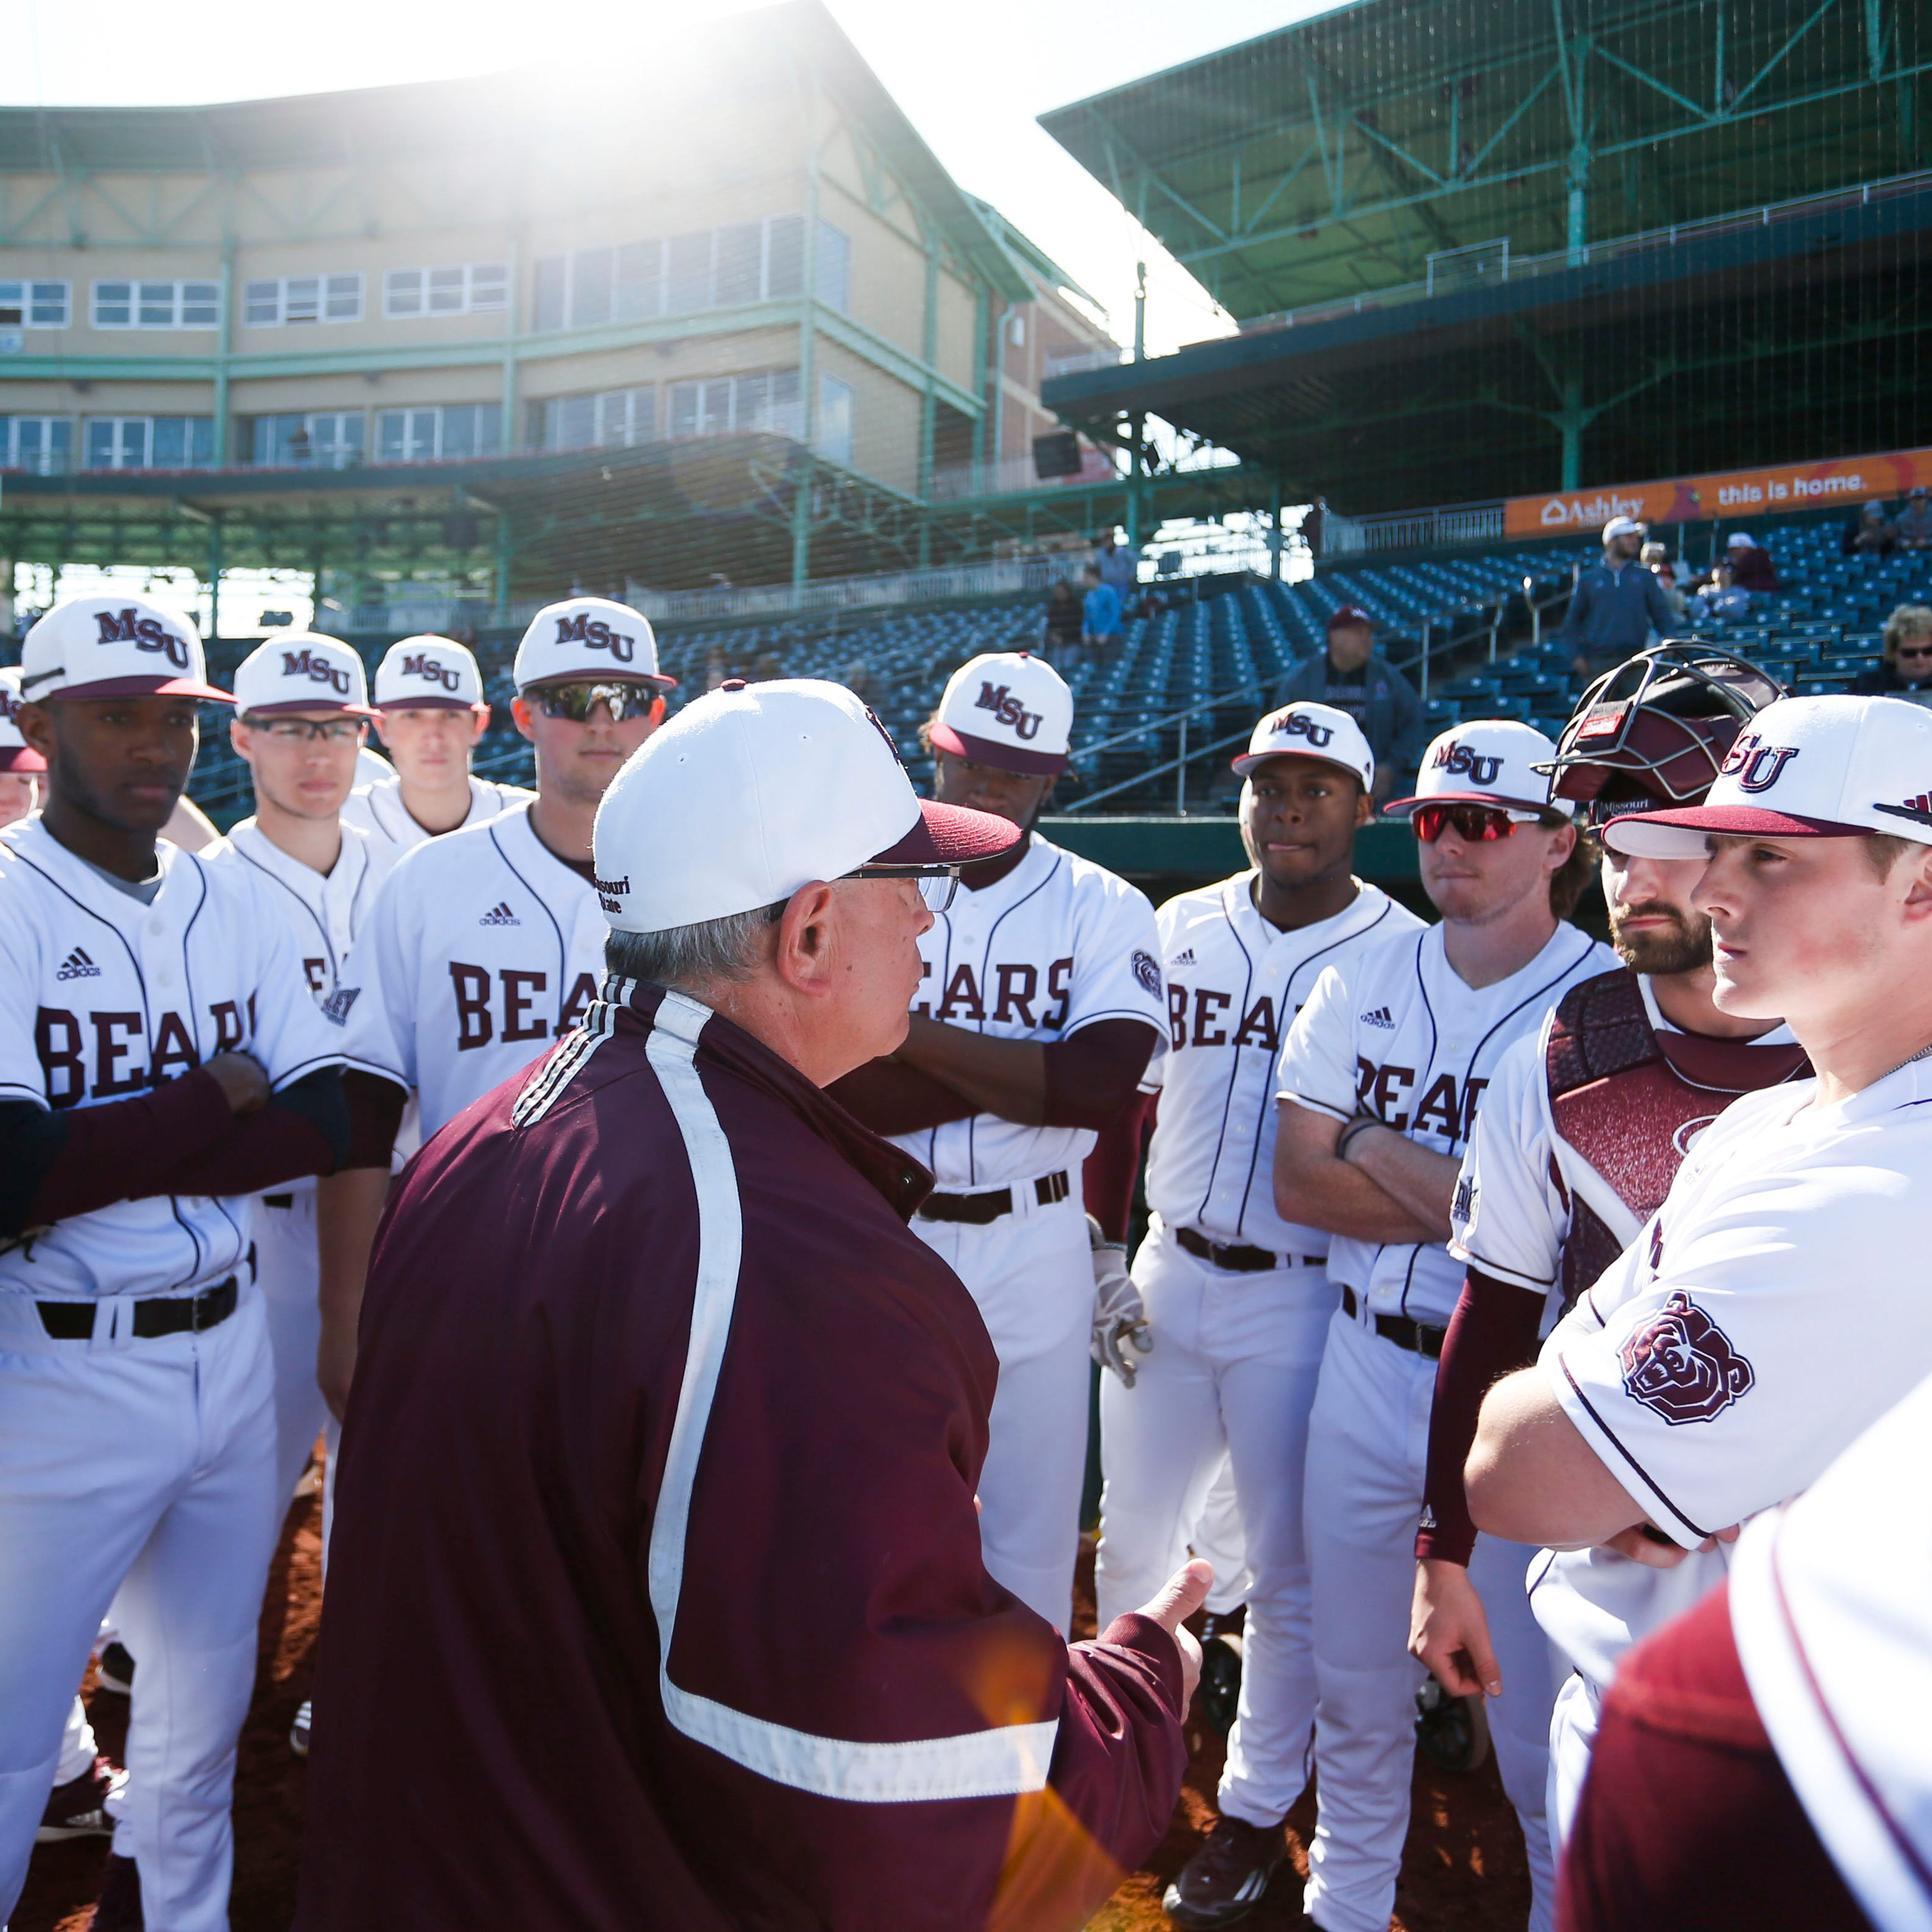 Missouri State baseball's disappointing season ends in MVC Tournament loss to Southern Illinois